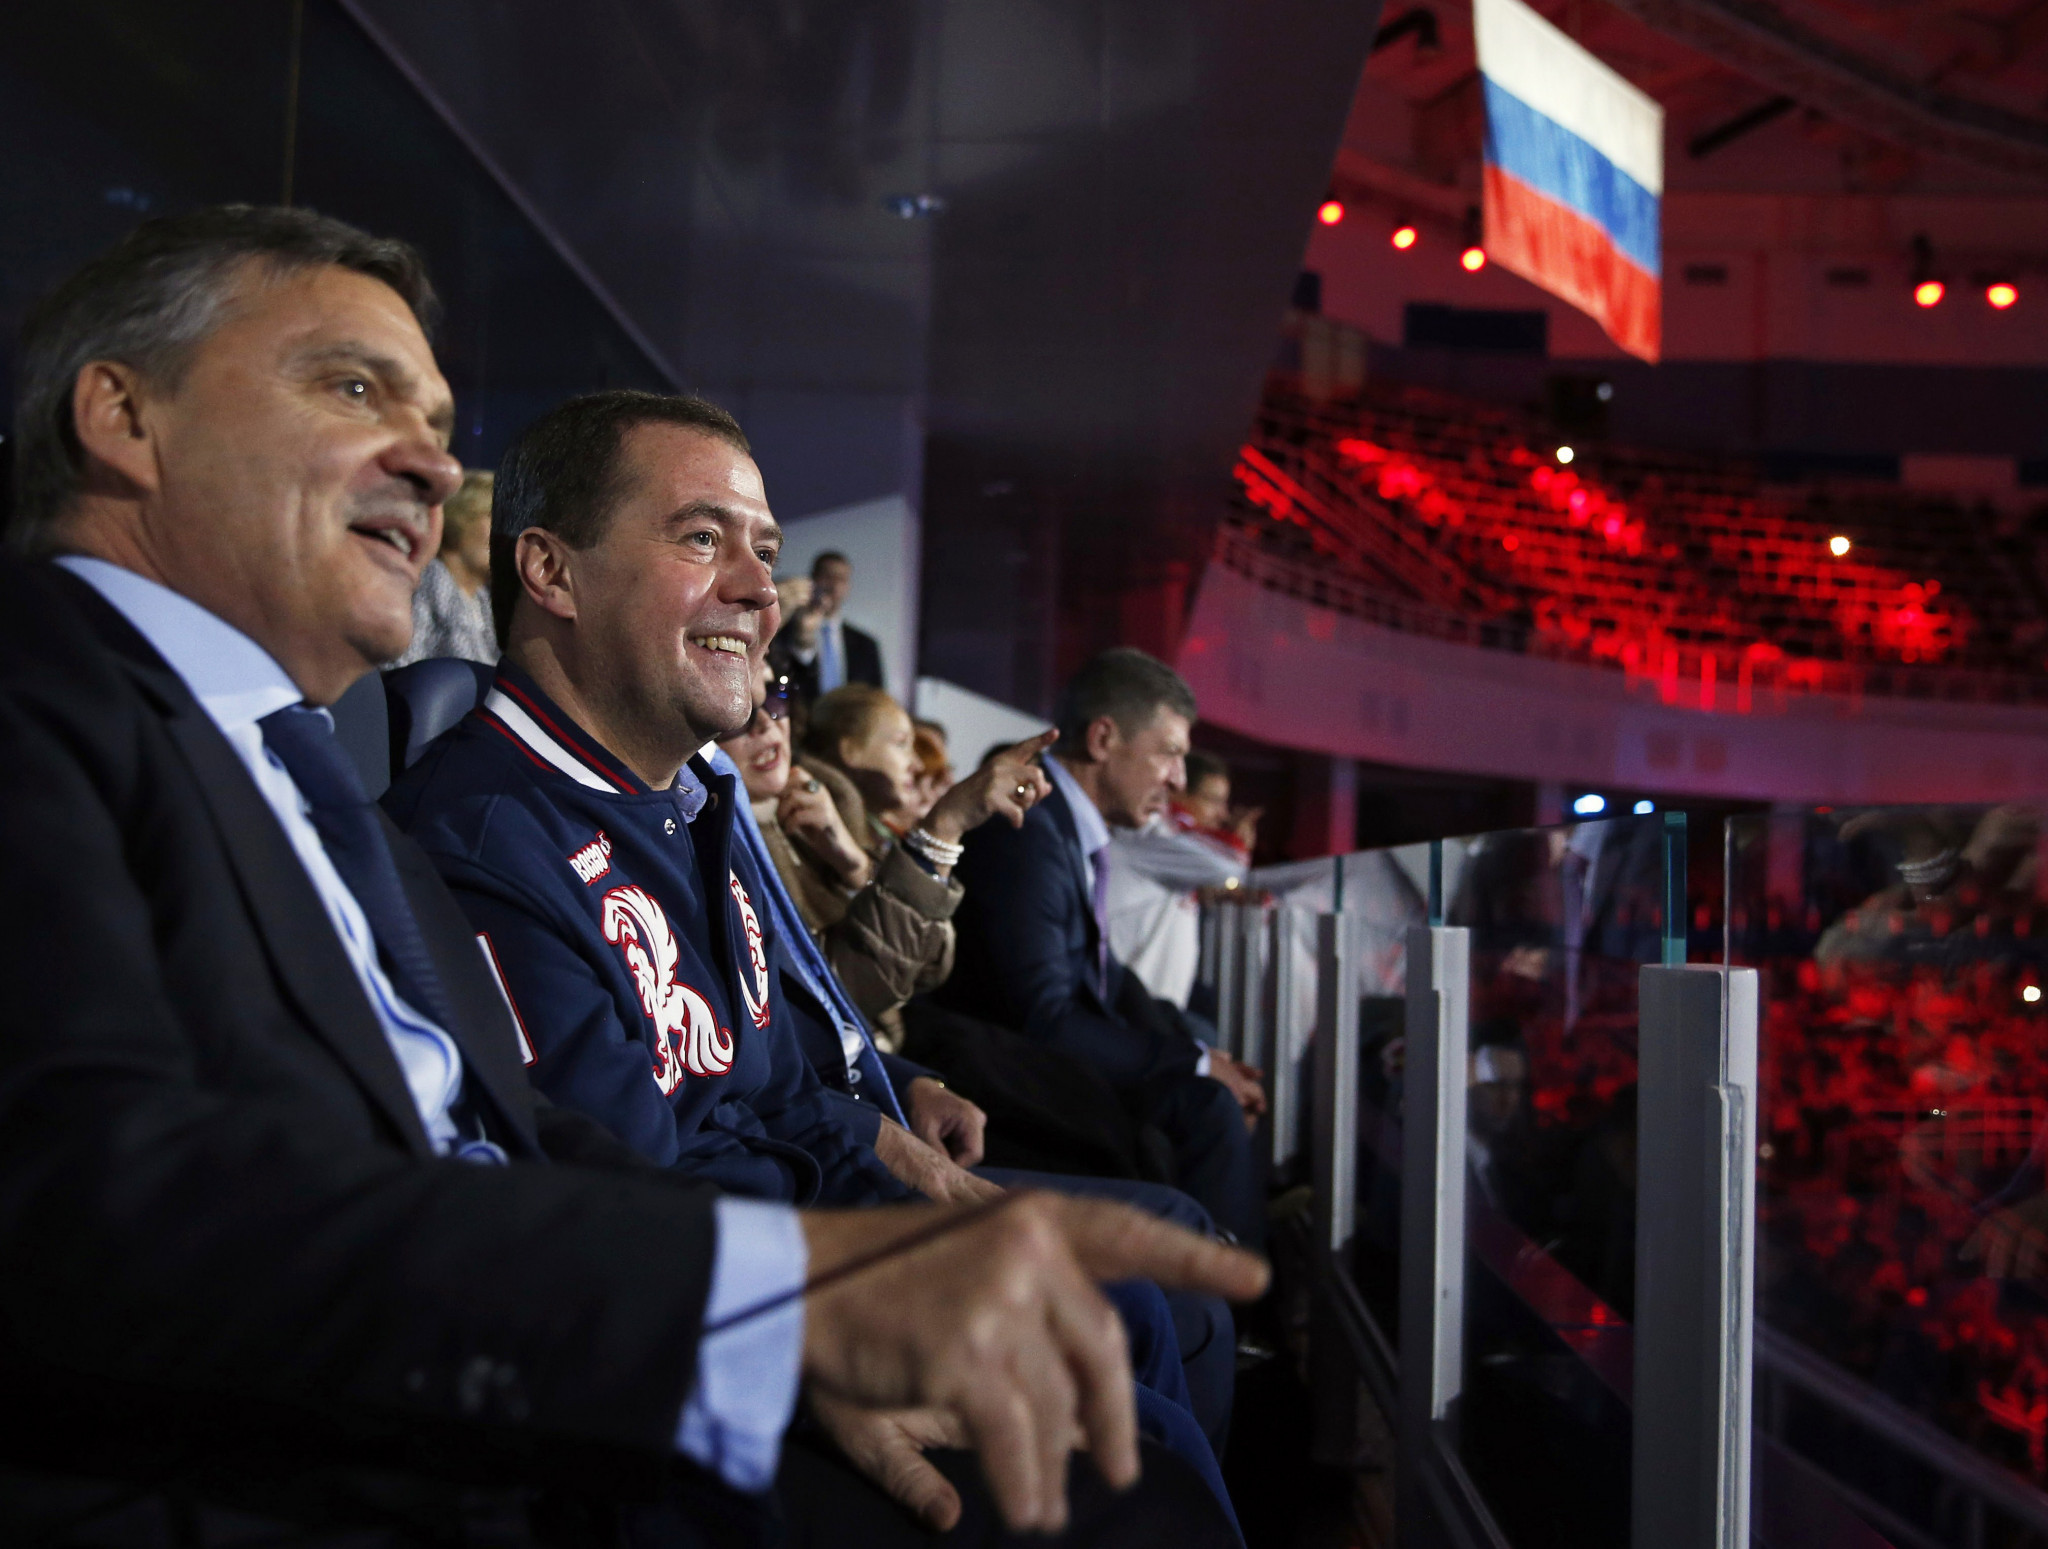 IIHF President René Fasel has also defended Russian participation, under their own flag, at Pyeongchang 2018 ©Getty Images